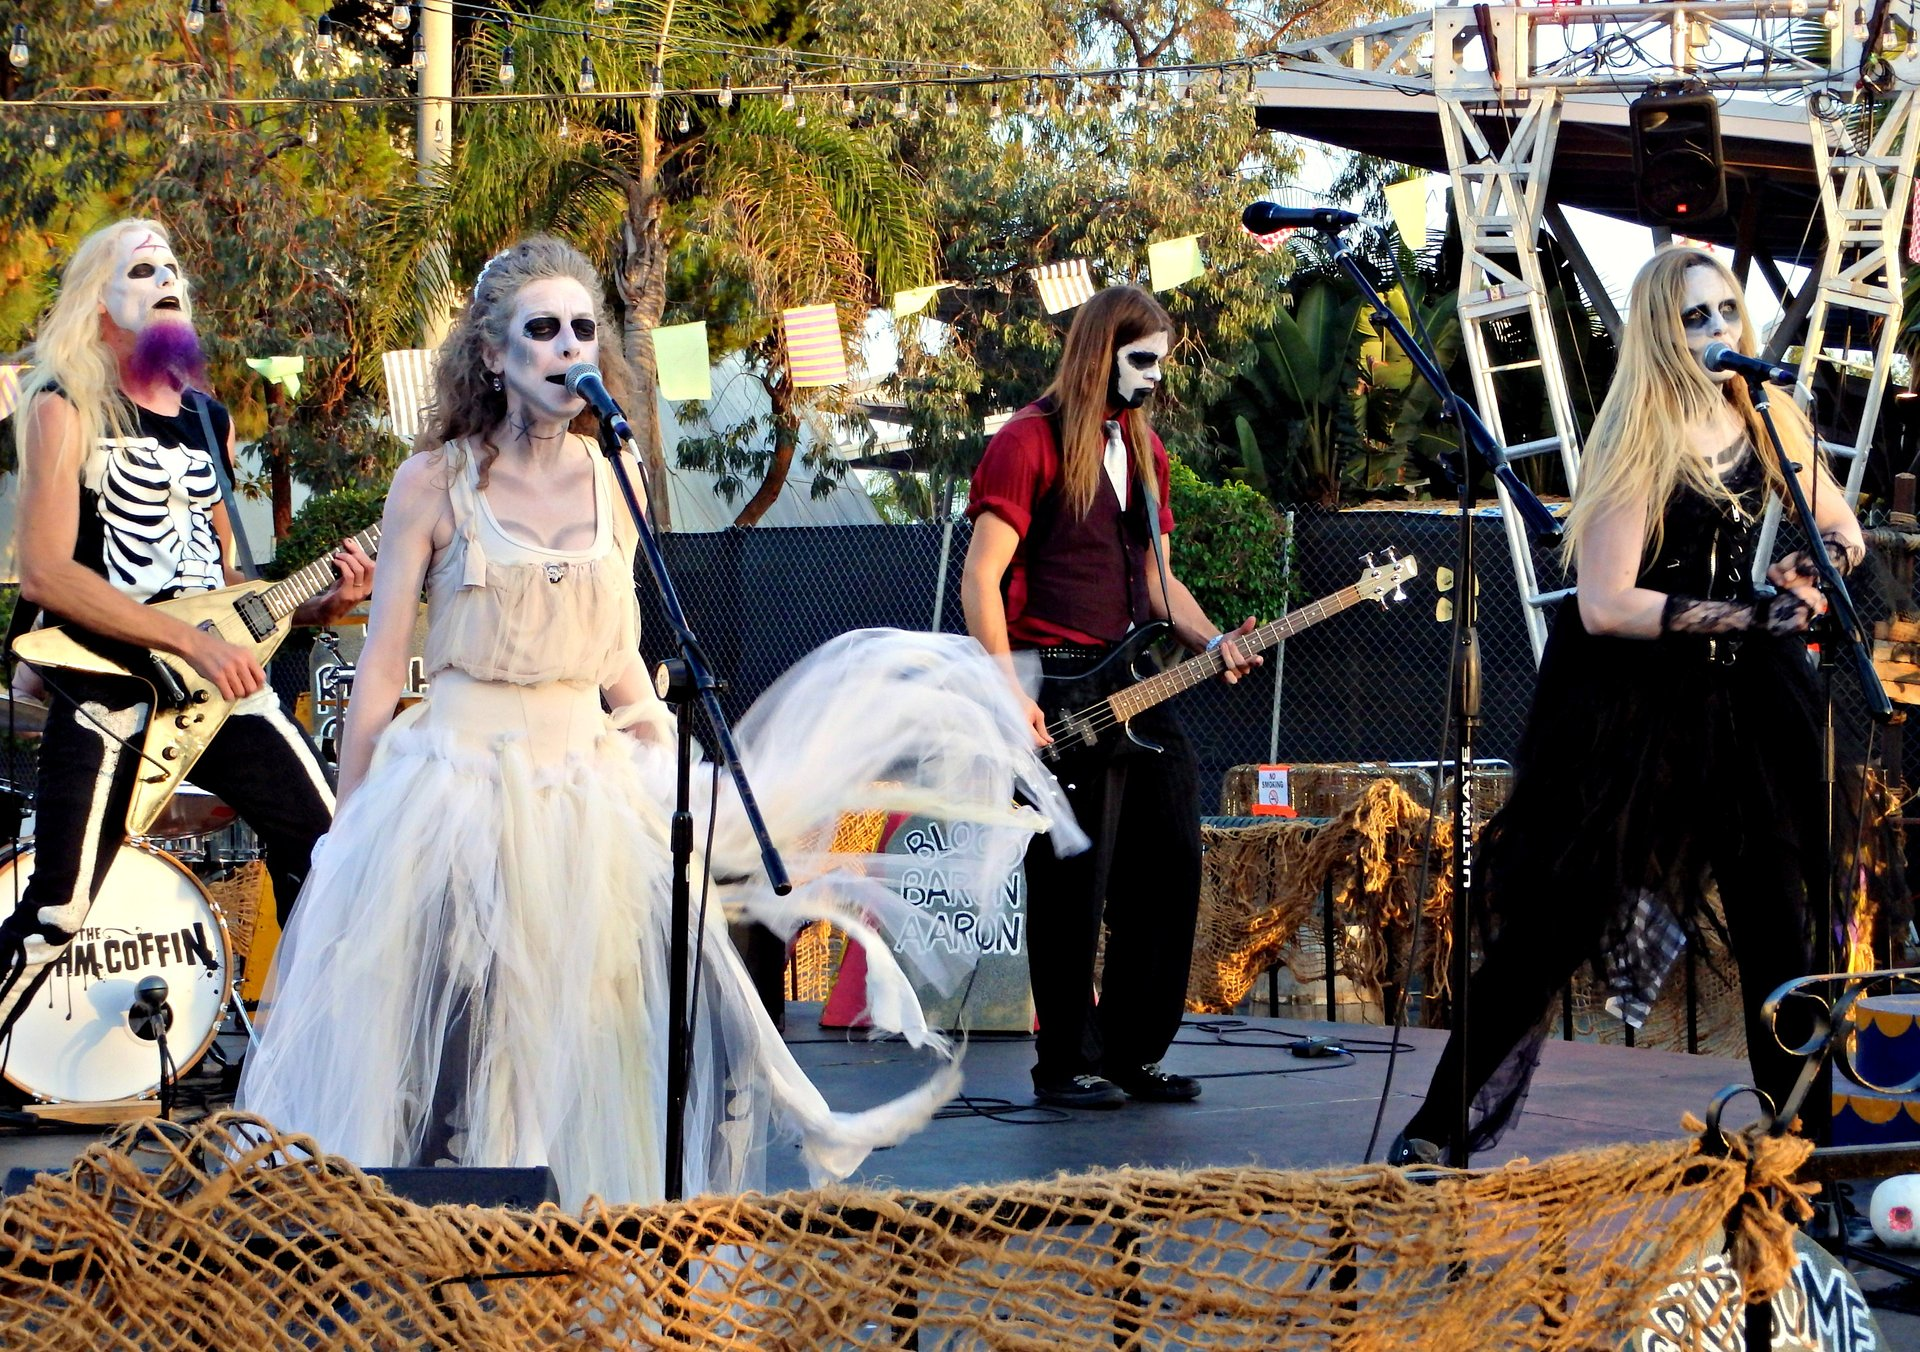 The Rhythm Coffin playing at Queen Mary's Dark Harbor 2020